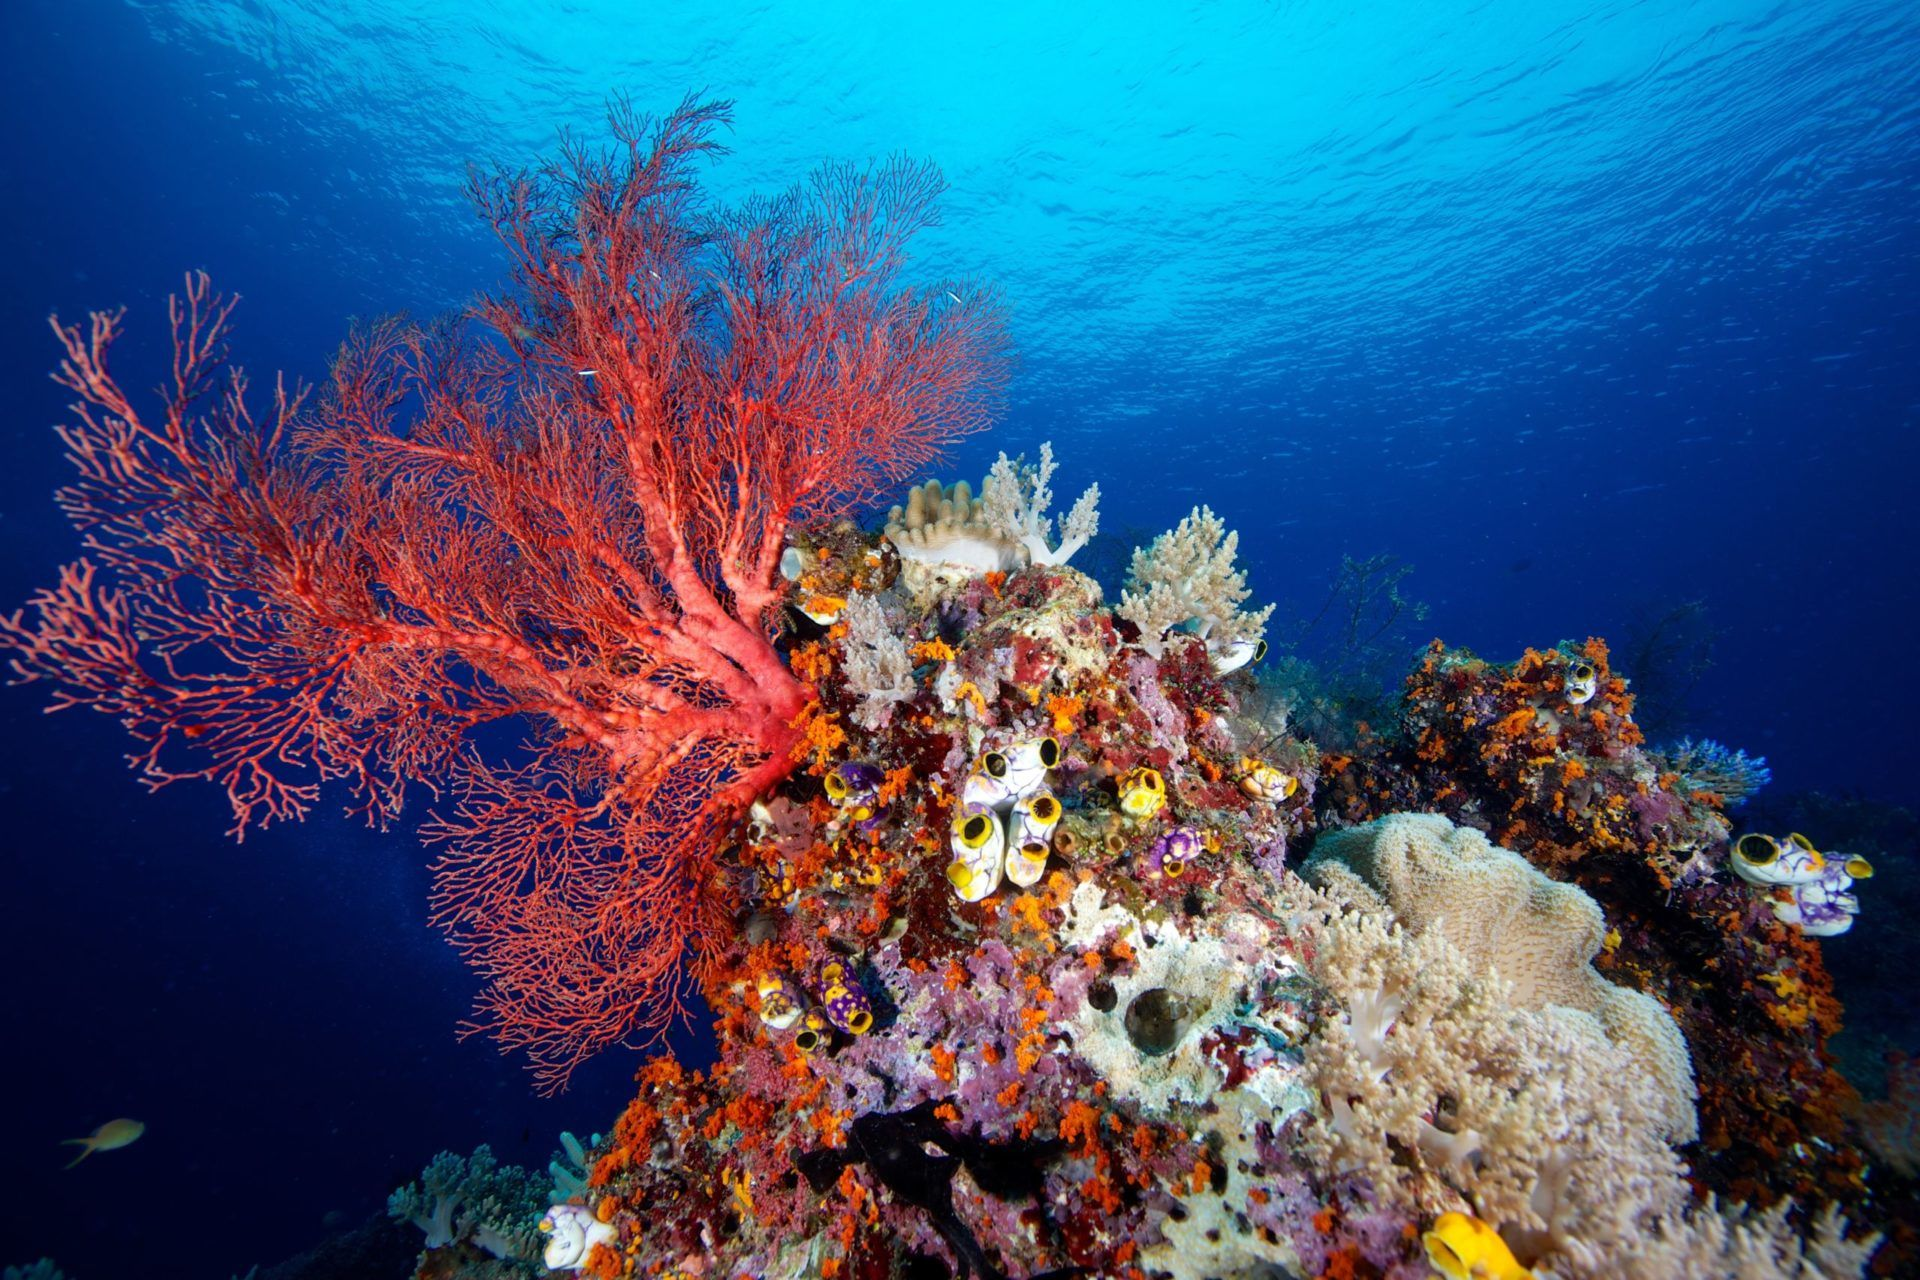 Scuba Diving at Apo Reef National Park